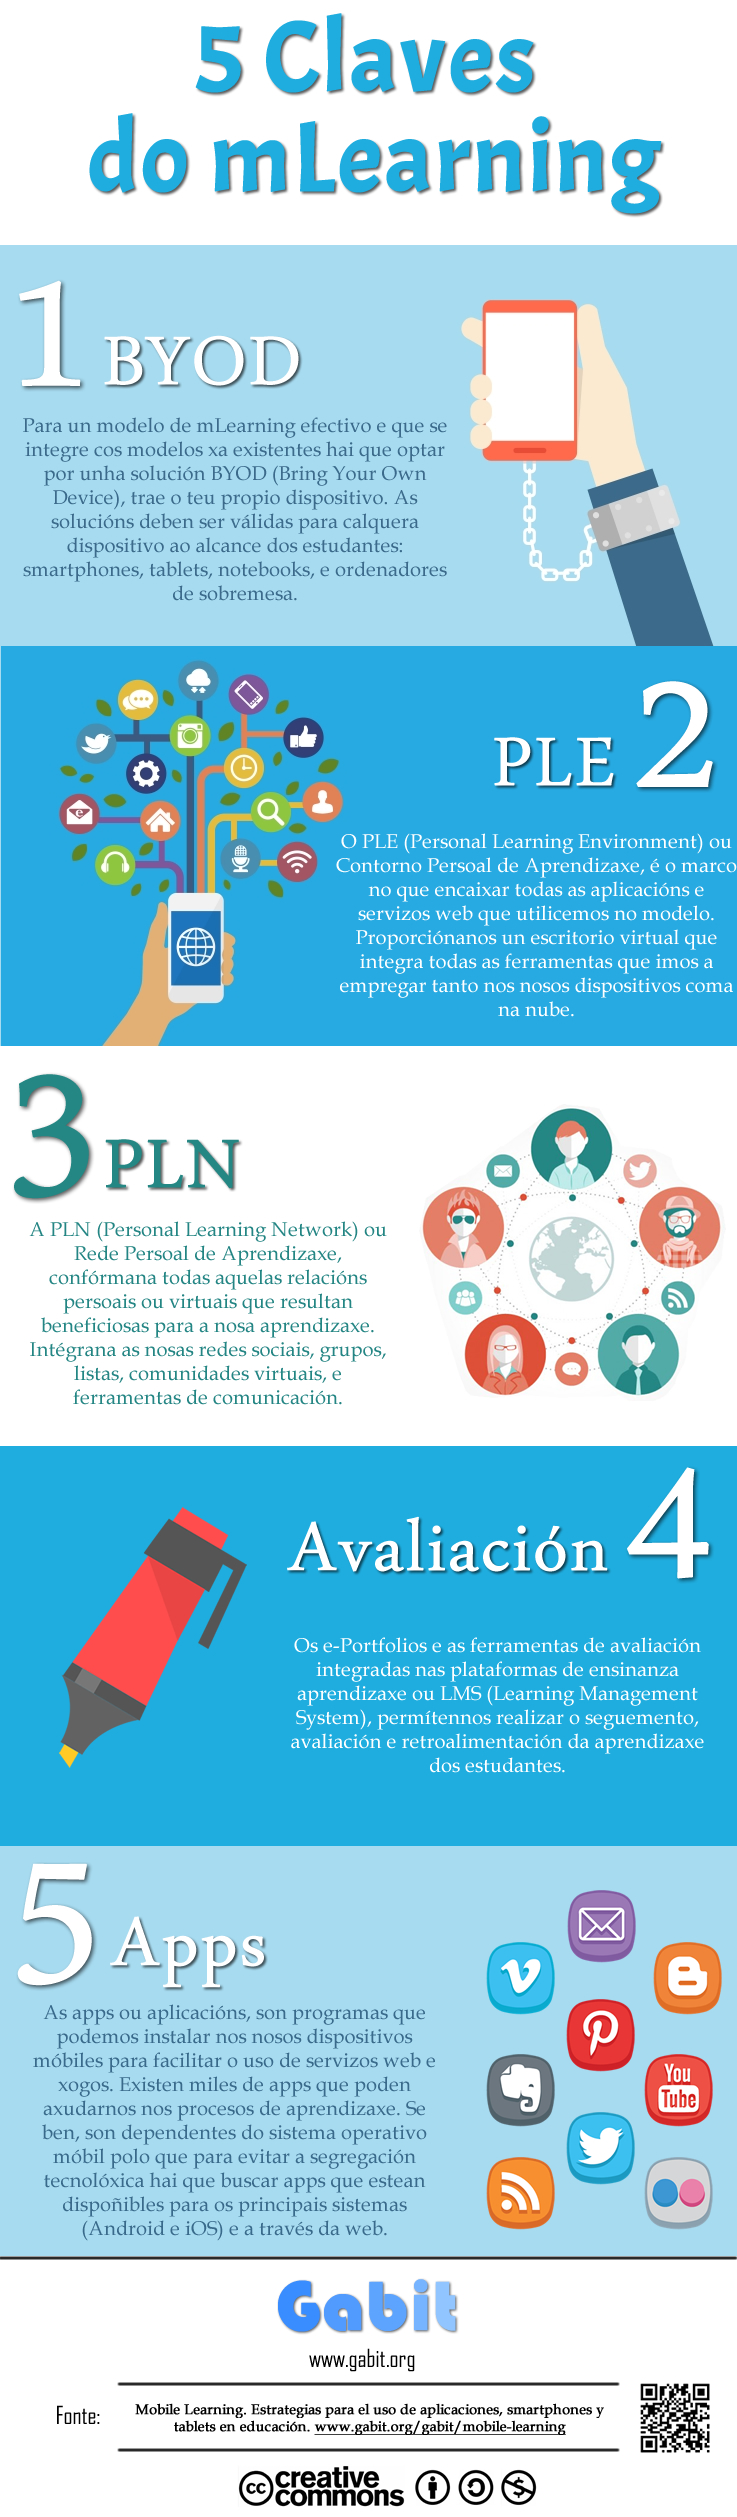 Infografía 5 Claves do mLearning